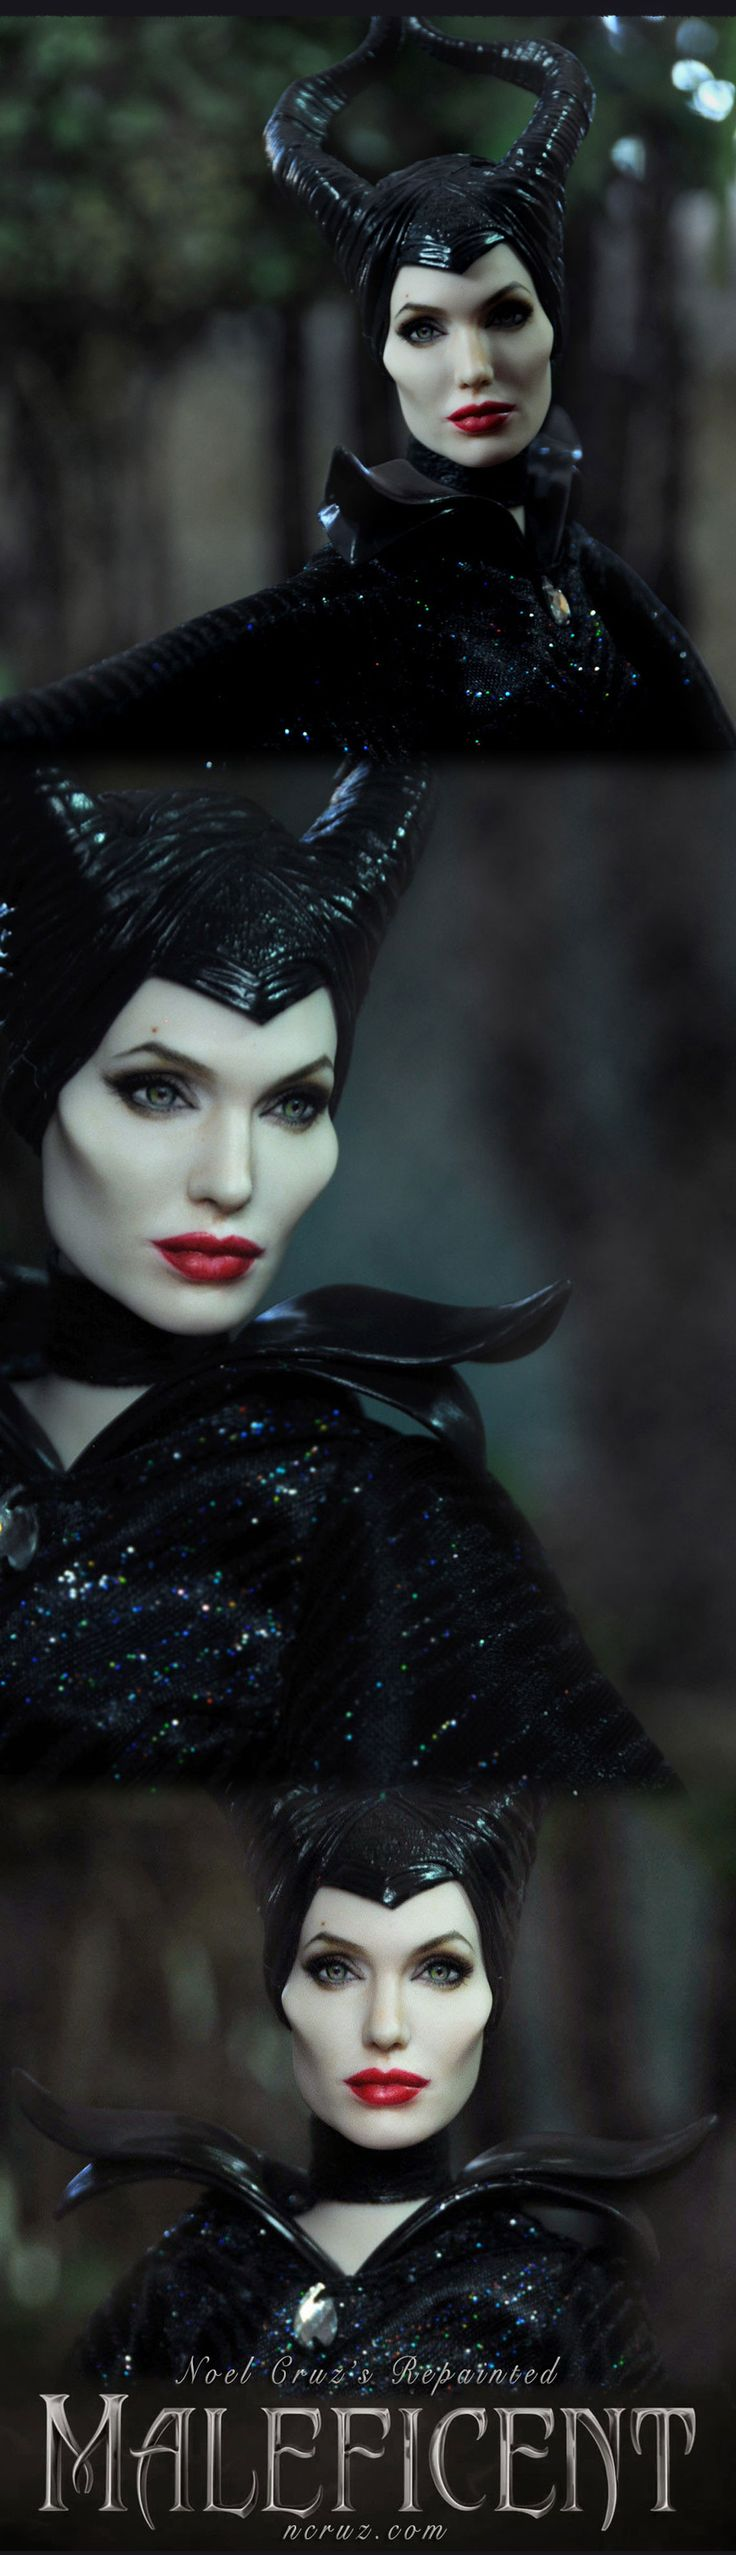 ::||www.ncruz.com::|| Angelina Jolie as MALEFICENT by Noel Cruz